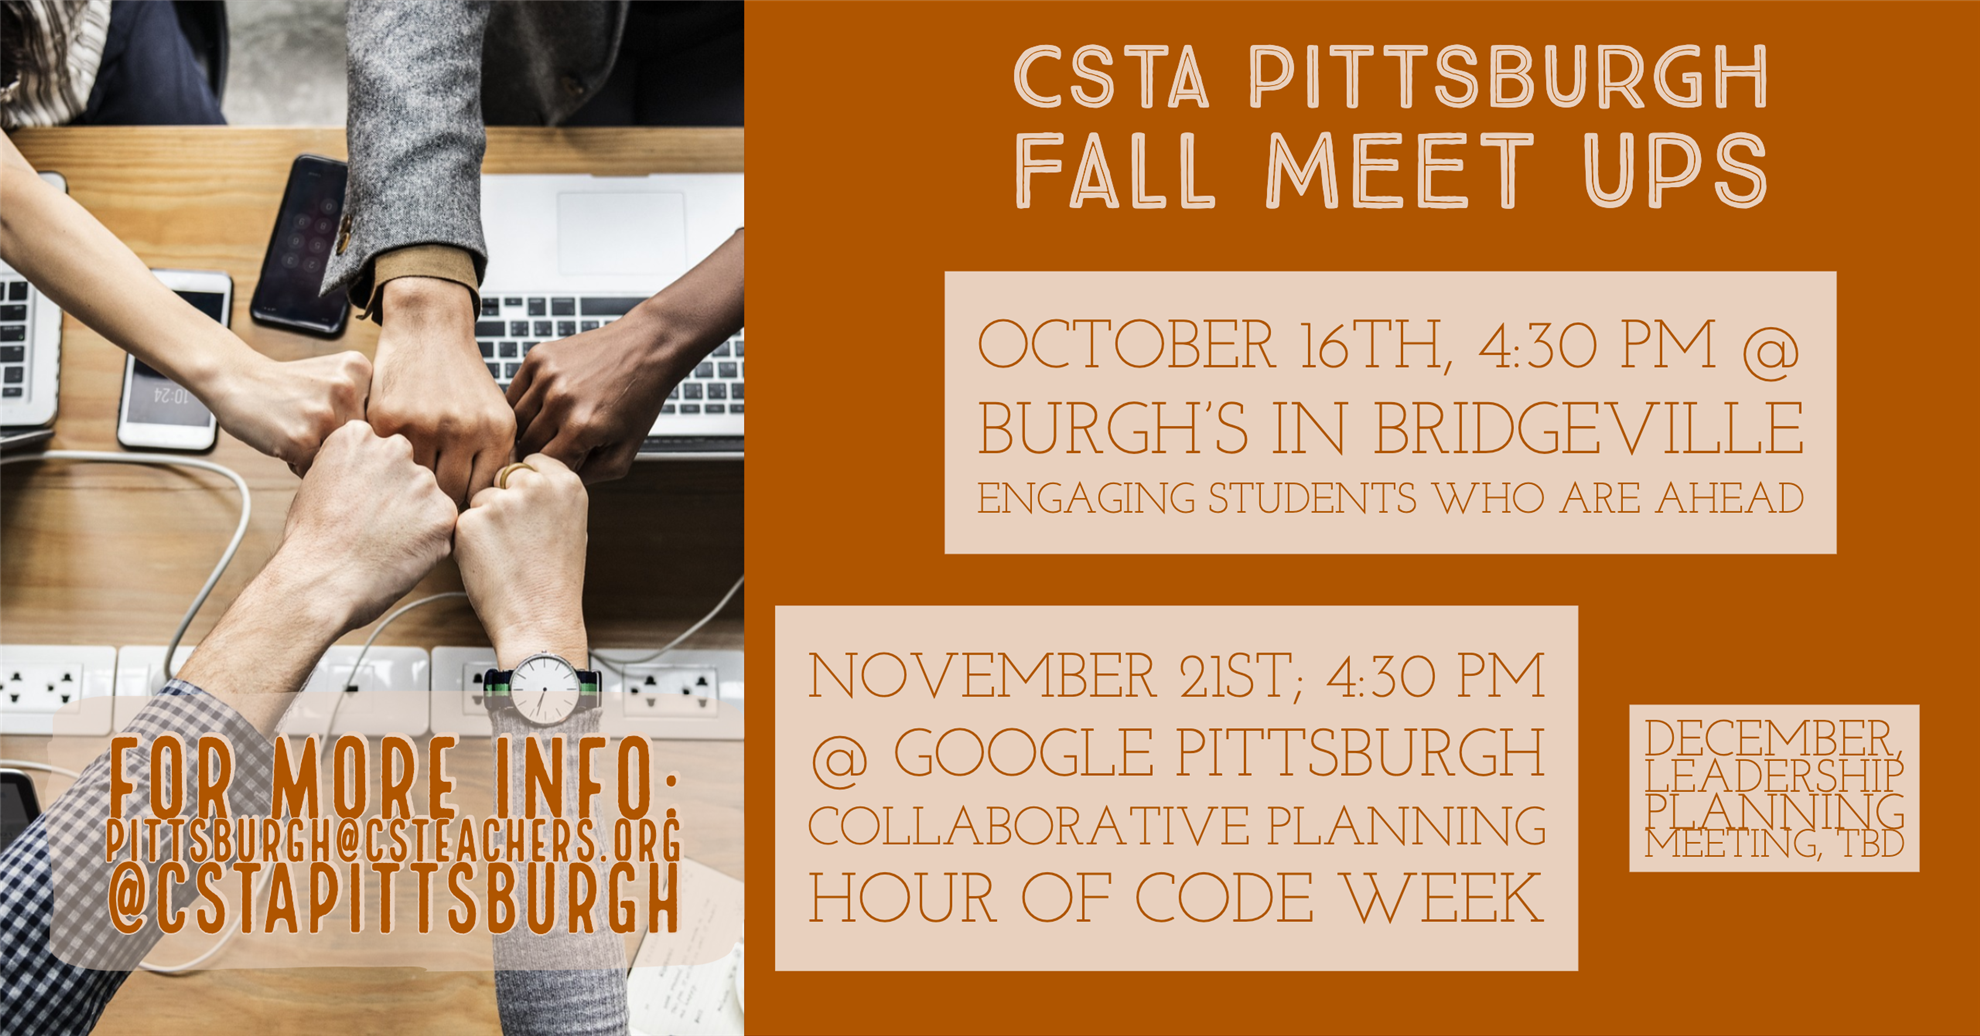 Collaborative planning Hour of Code Week (CSTA Pittsburgh)